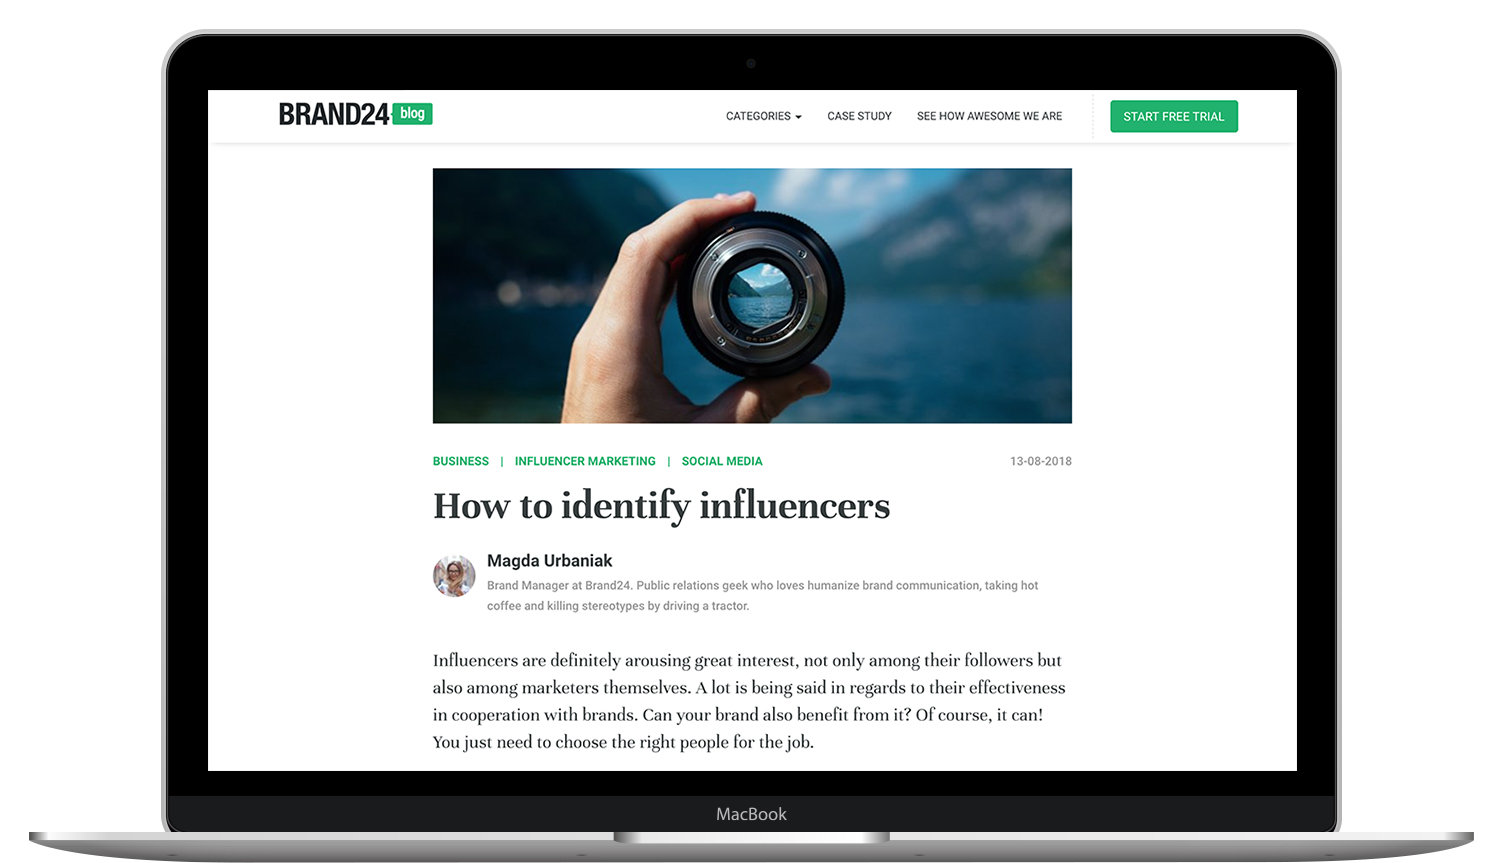 Want more information on finding influencers?